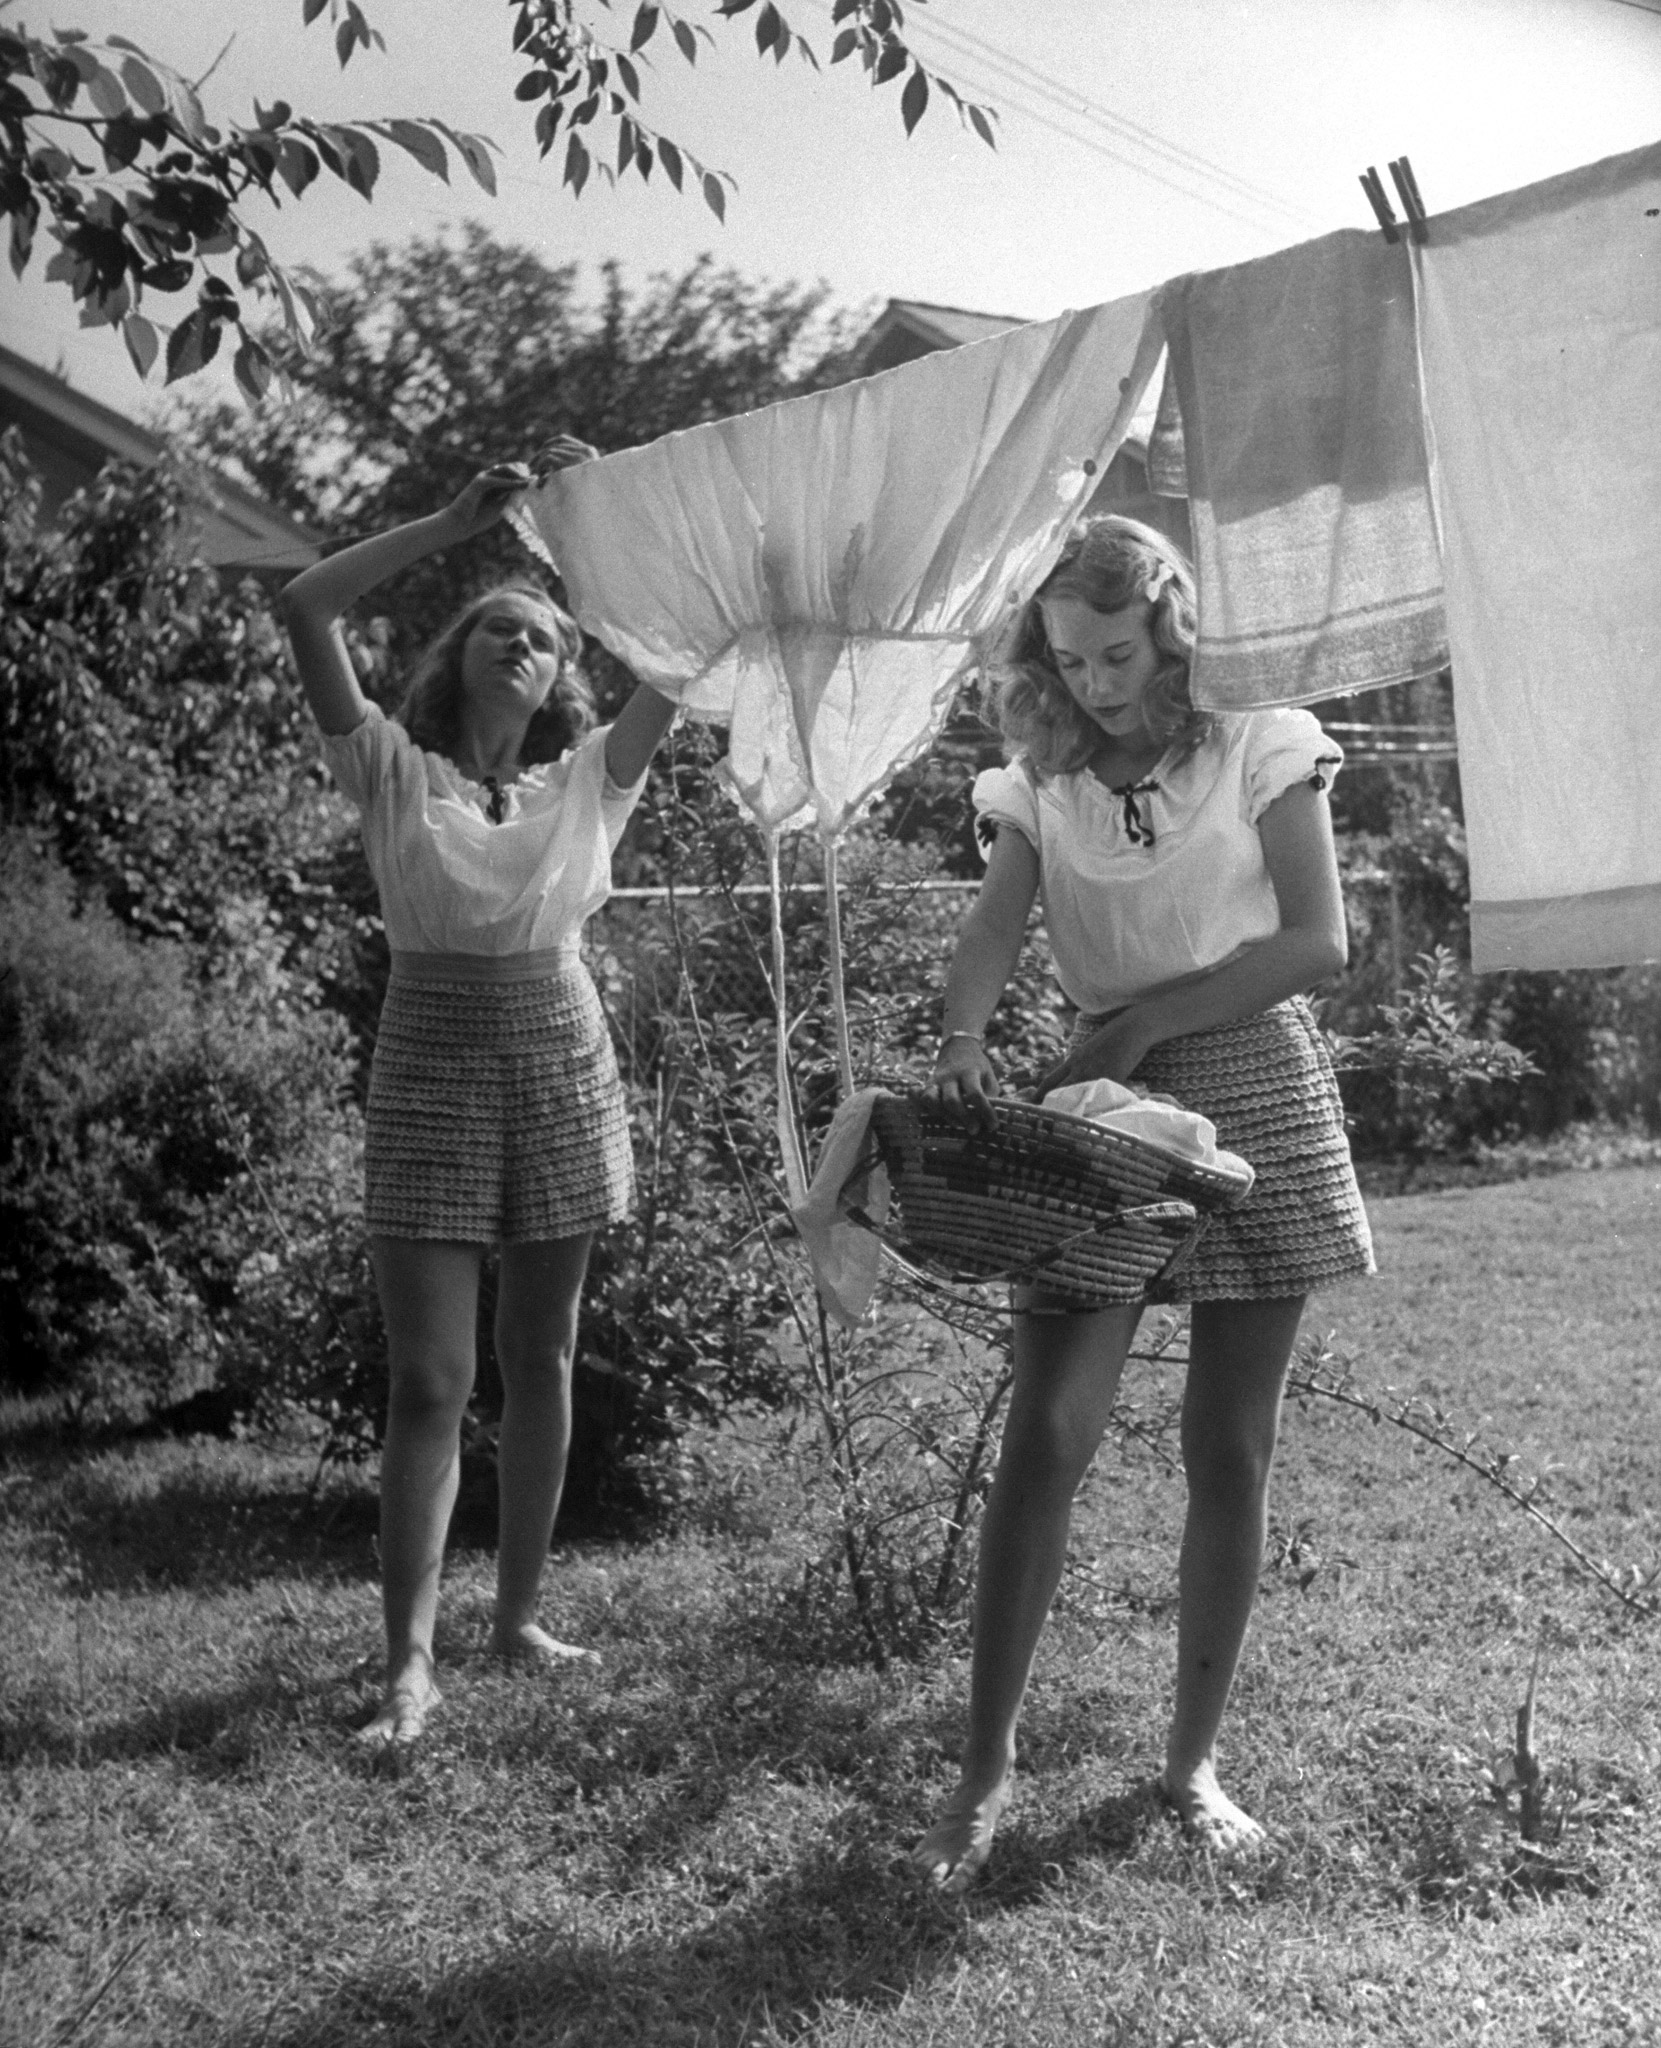 <b>Caption from LIFE.</b> Chores are receiving new respect, for 1947 teen-agers think of marriage much more seriously than their wartime equivalents did. Note the frilliness of Betty's shorts.